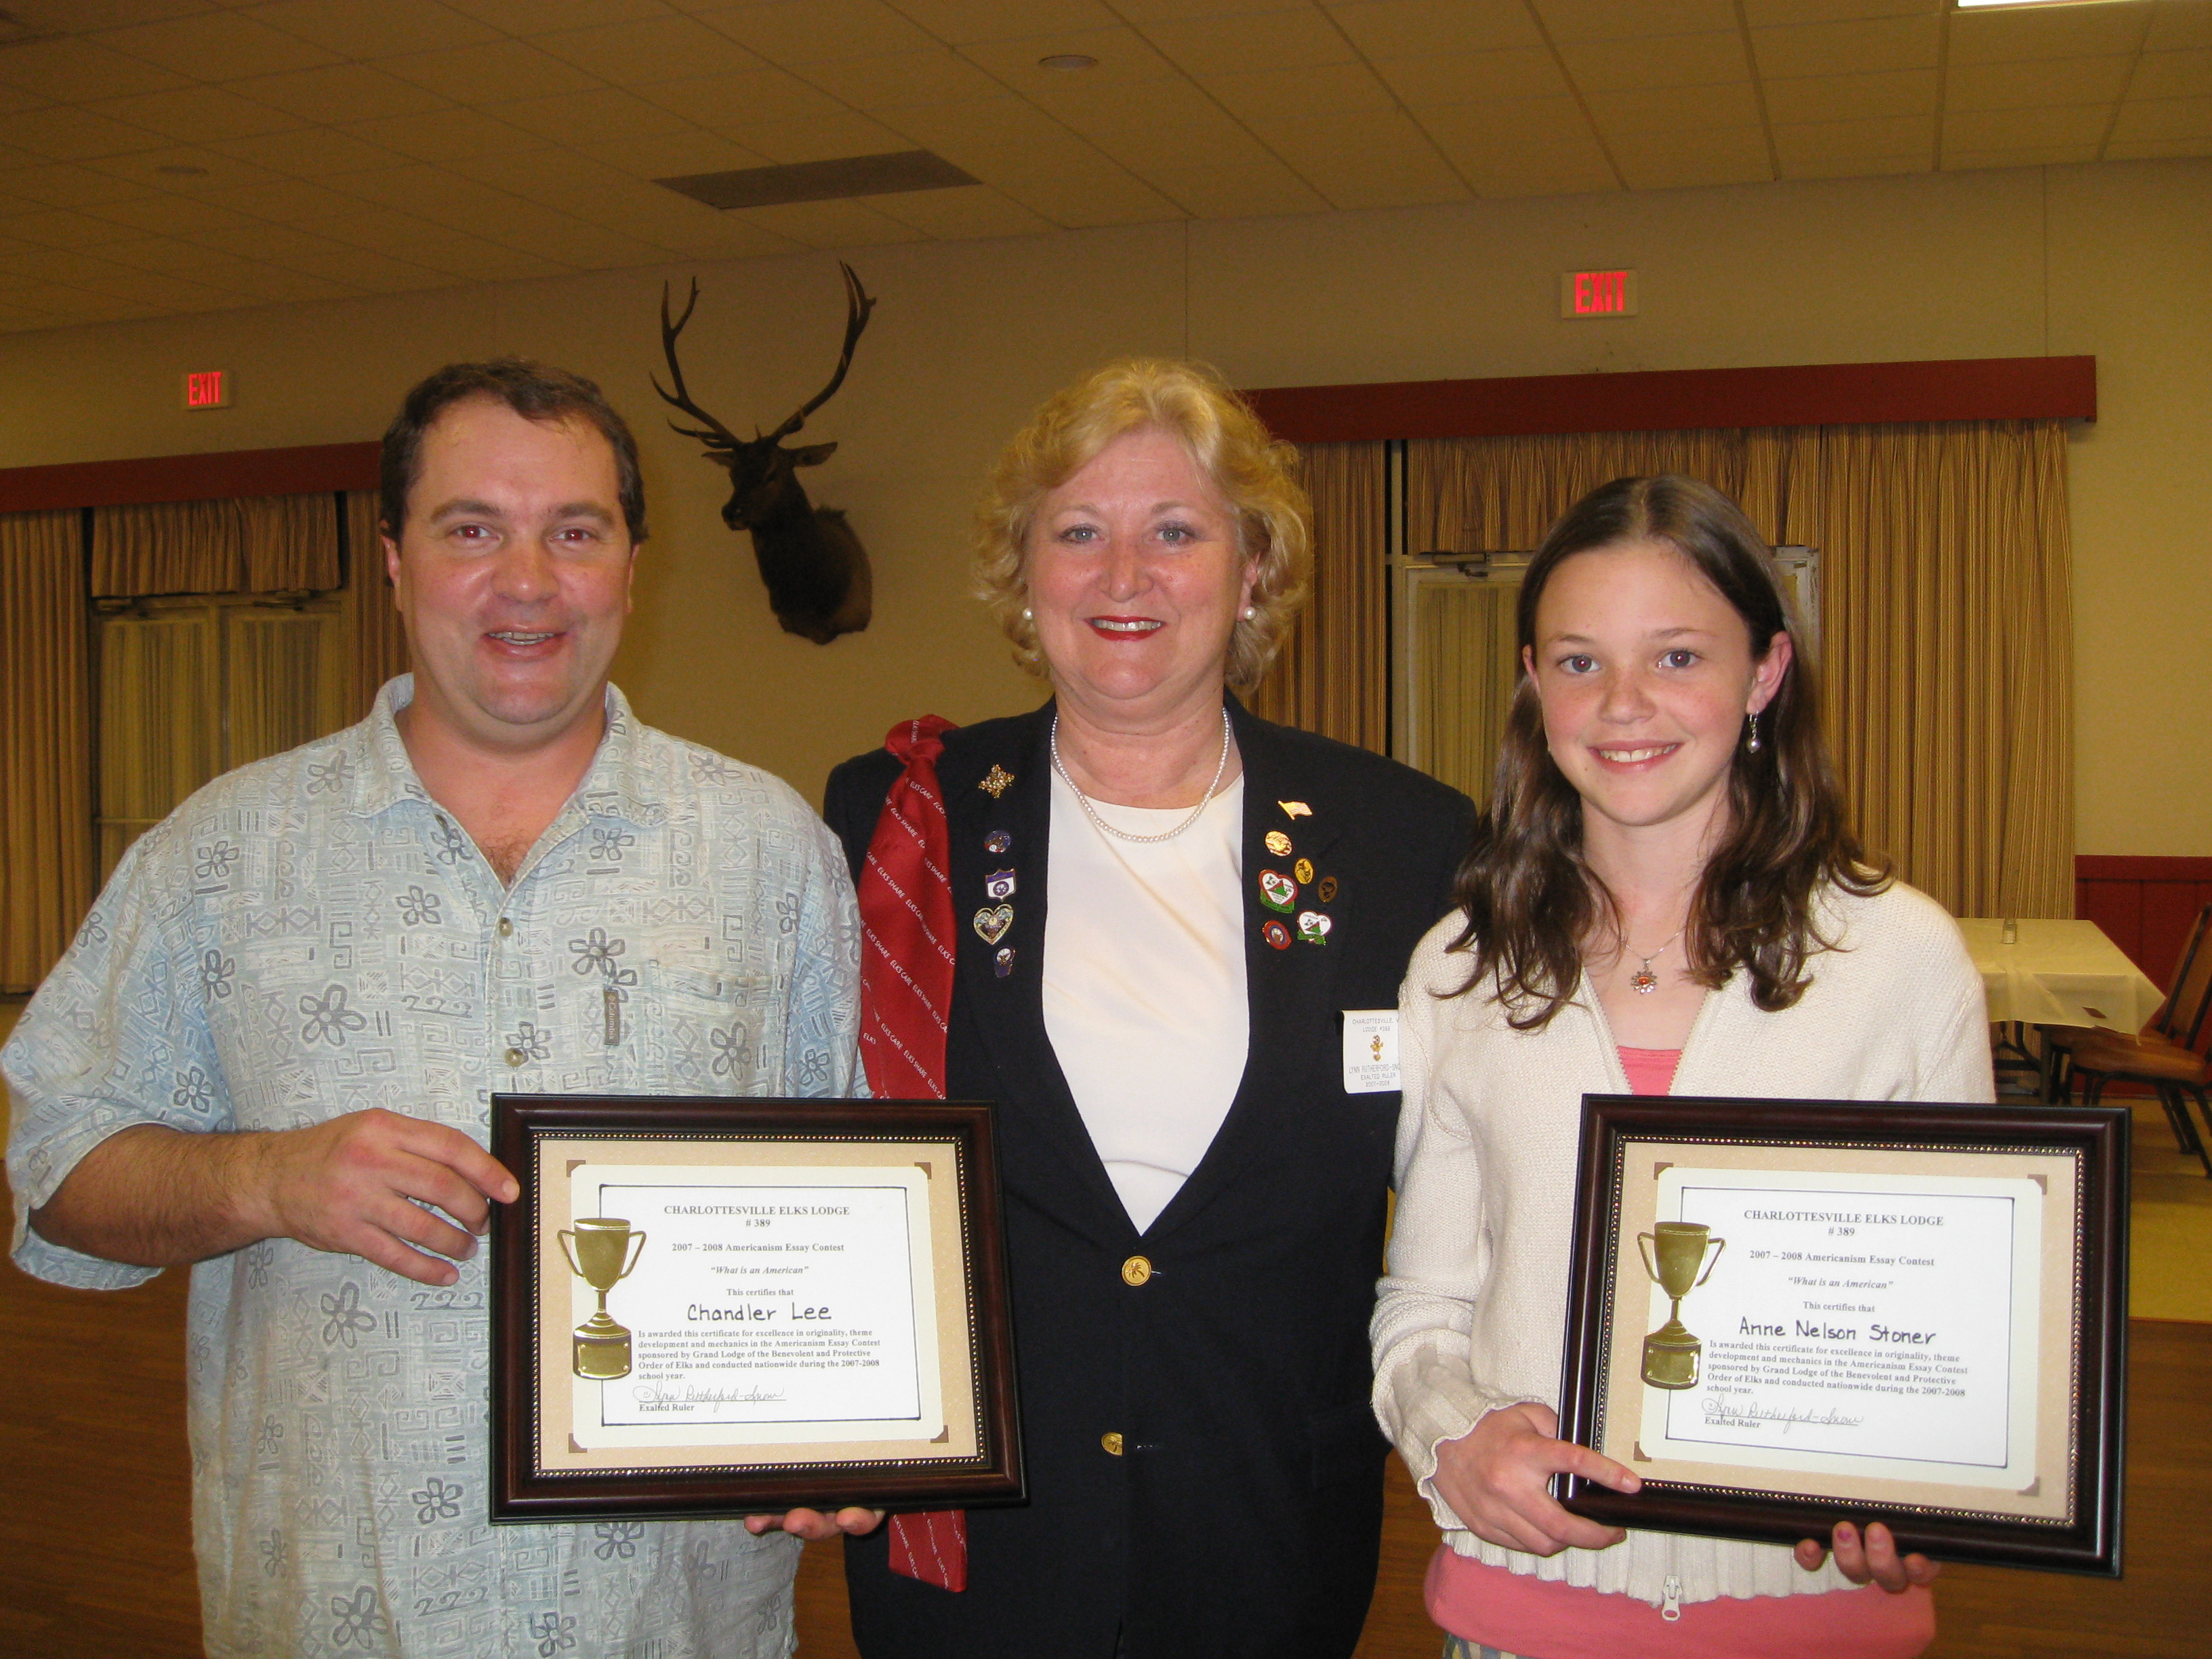 elks essay contest 2010 Americanism essay contest each year the elks sponsor an essay contest on topics relating to americanism the topic for 2017-2018 is why our veterans are america's.